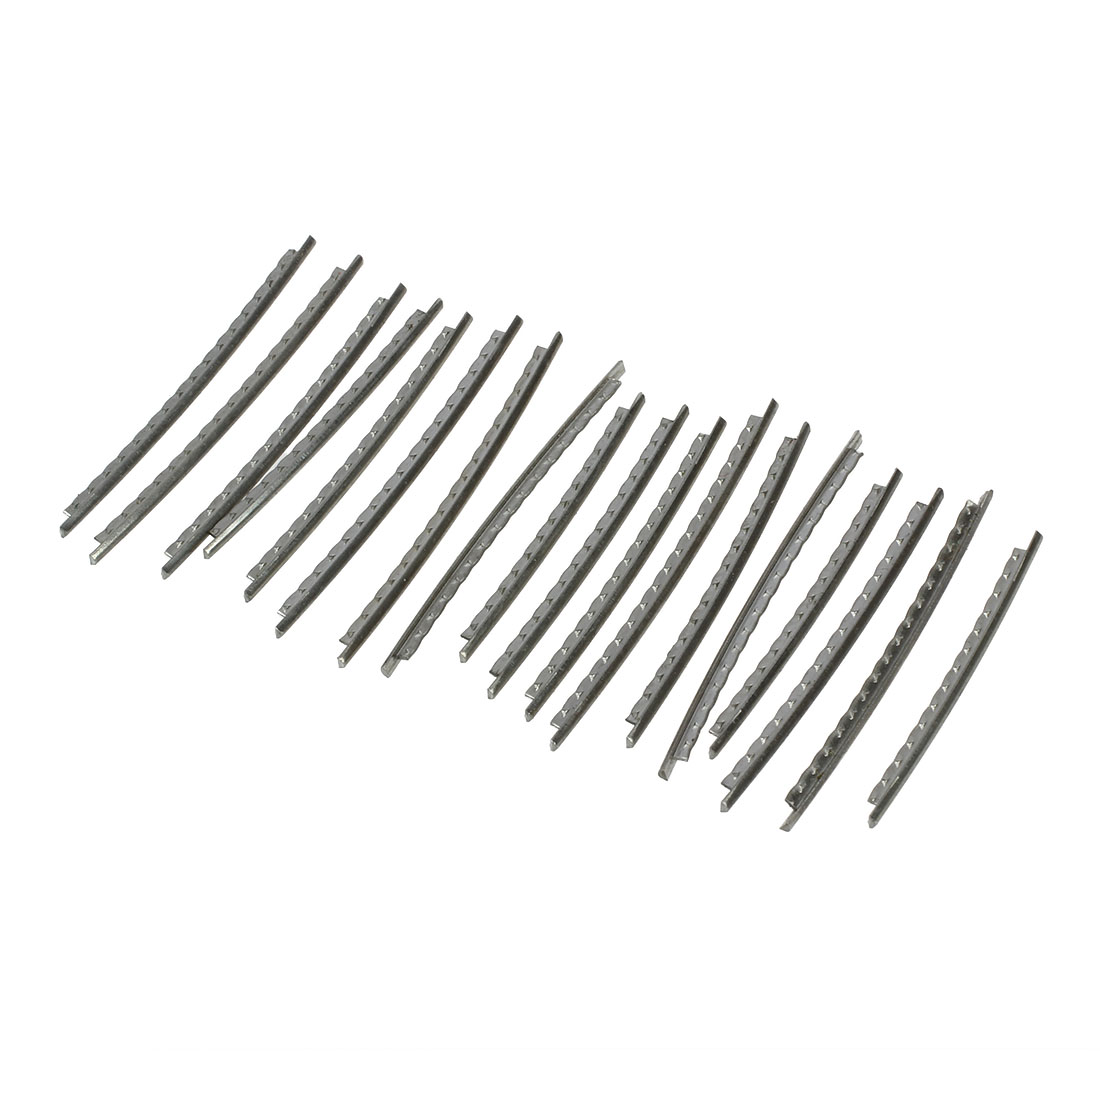 18pcs classical guitar fret wire fretwire set precut width silver in guitar parts. Black Bedroom Furniture Sets. Home Design Ideas